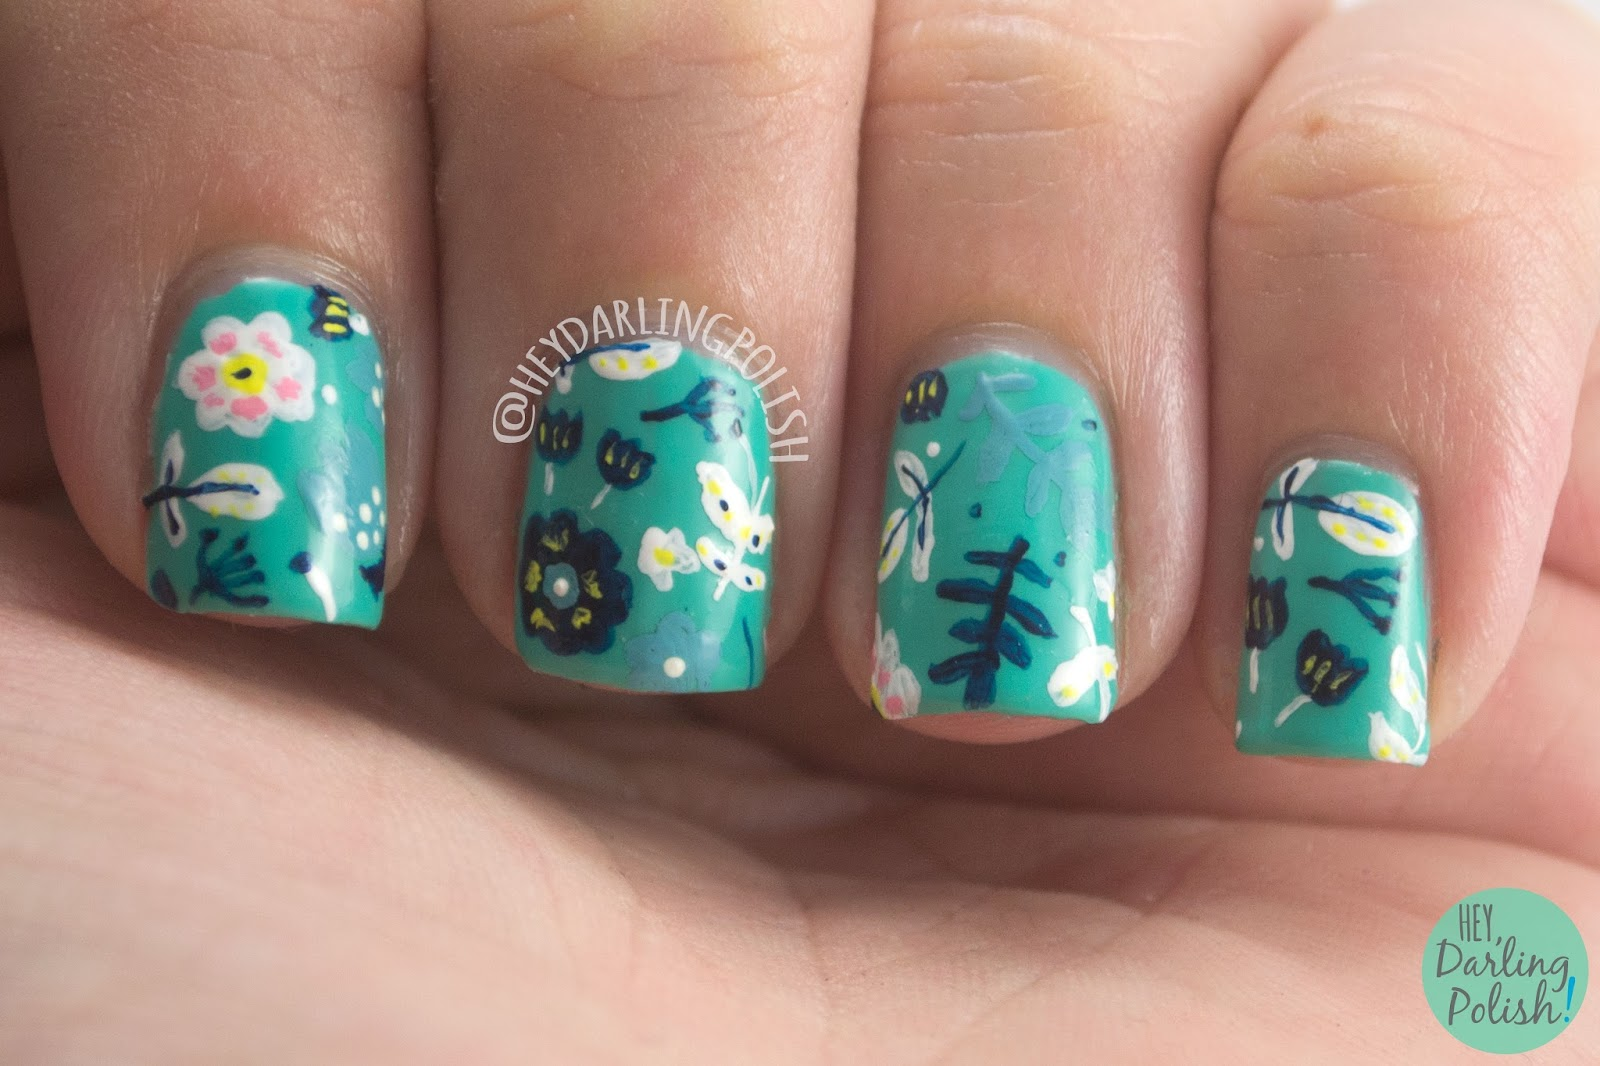 nails, nail art, nail polish, floral, pattern, hey darling polish, green, flowers, 31 day challenge, 31dc2014